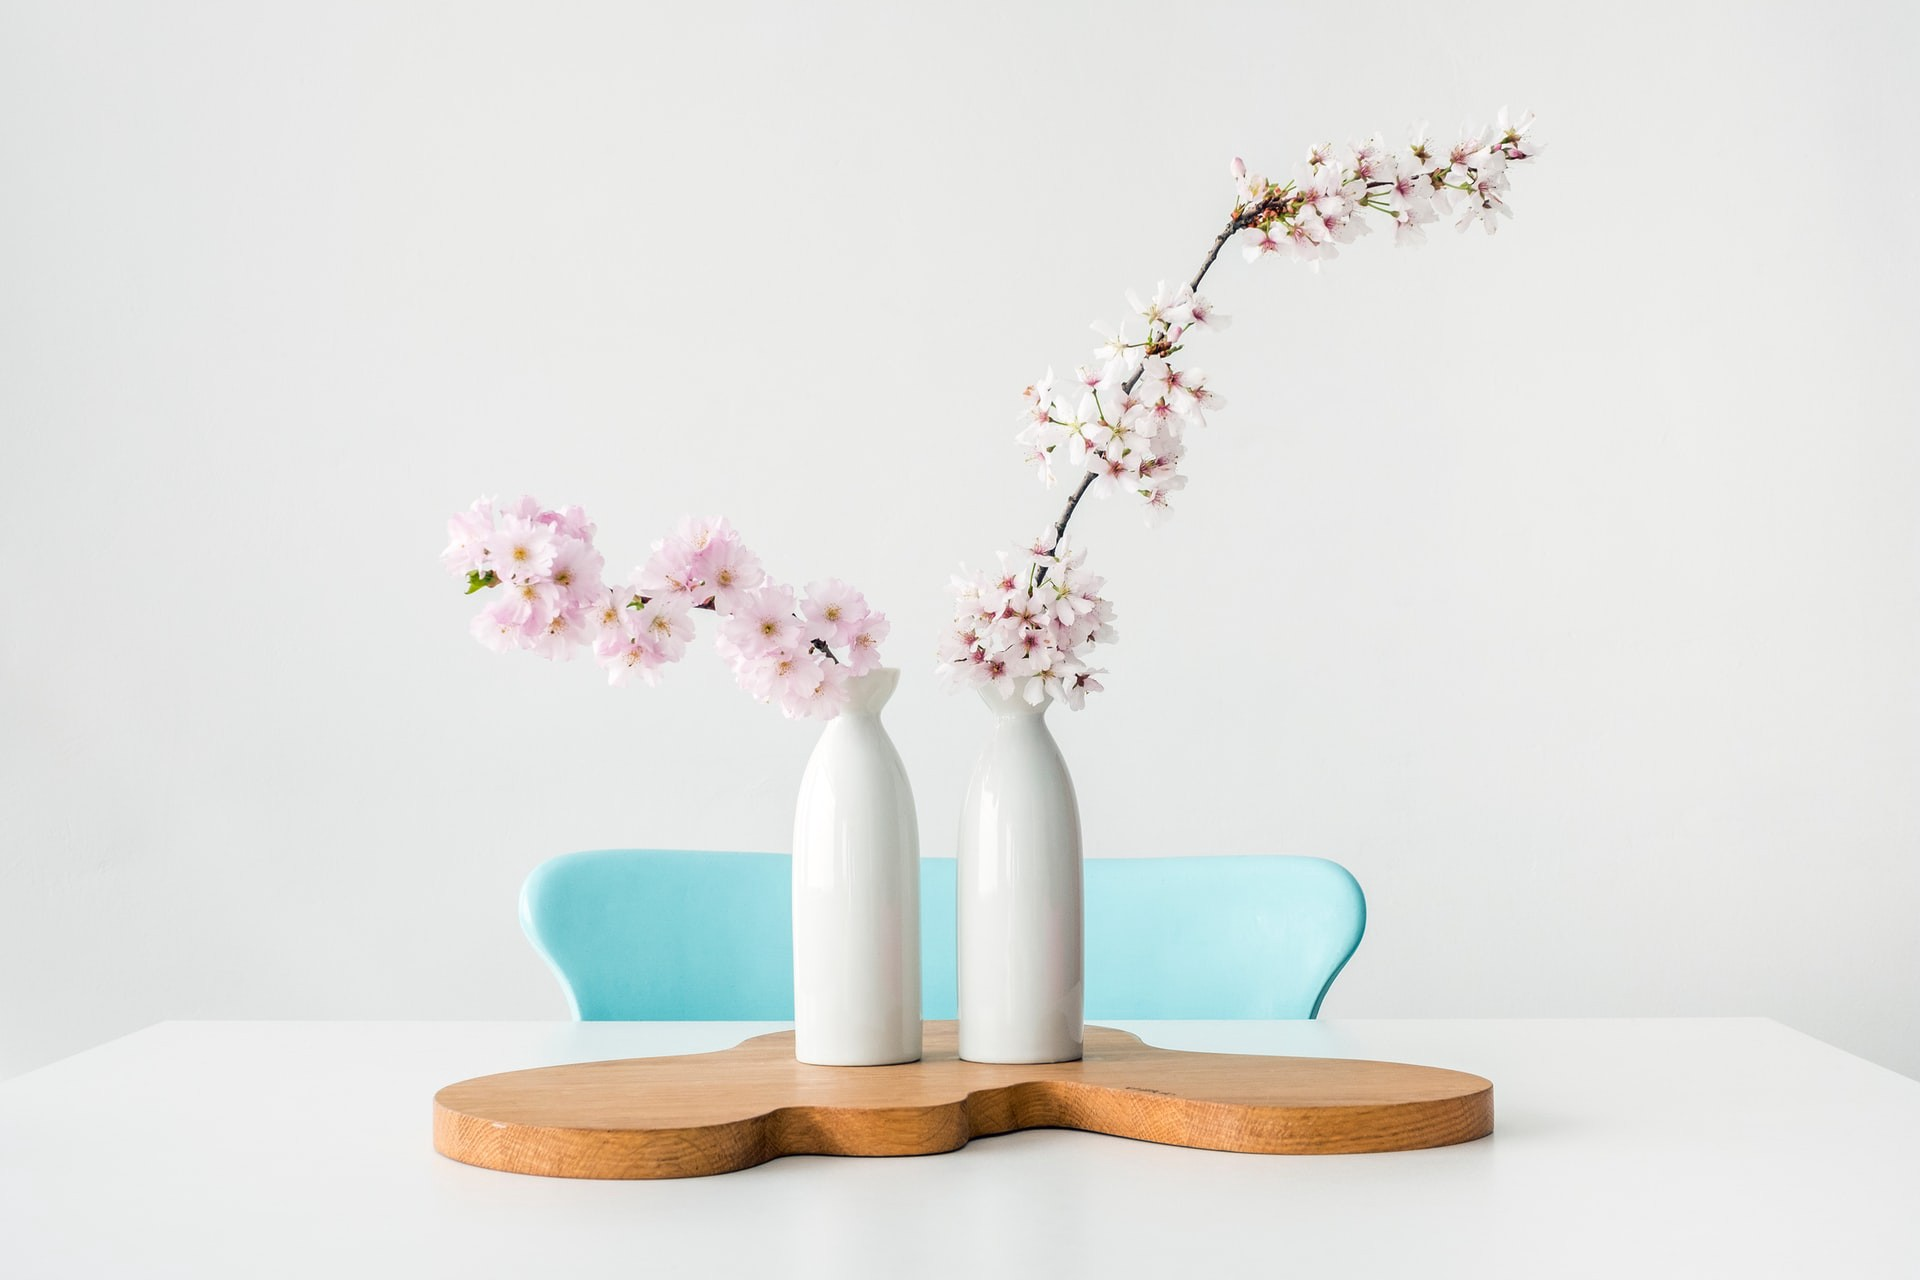 Two white vases with a stalk of flower each kept on a wooden board